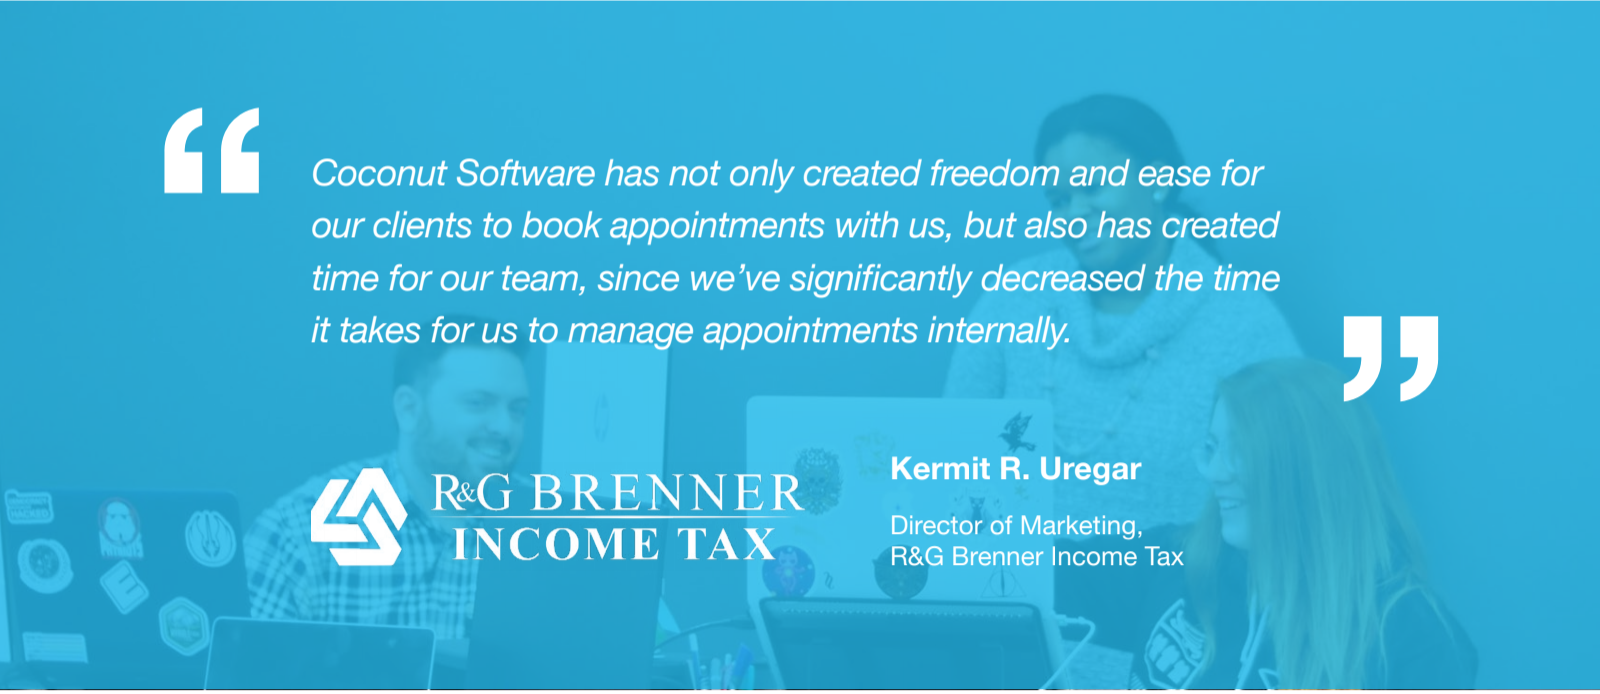 R&G Brenner Success Story - User Quote